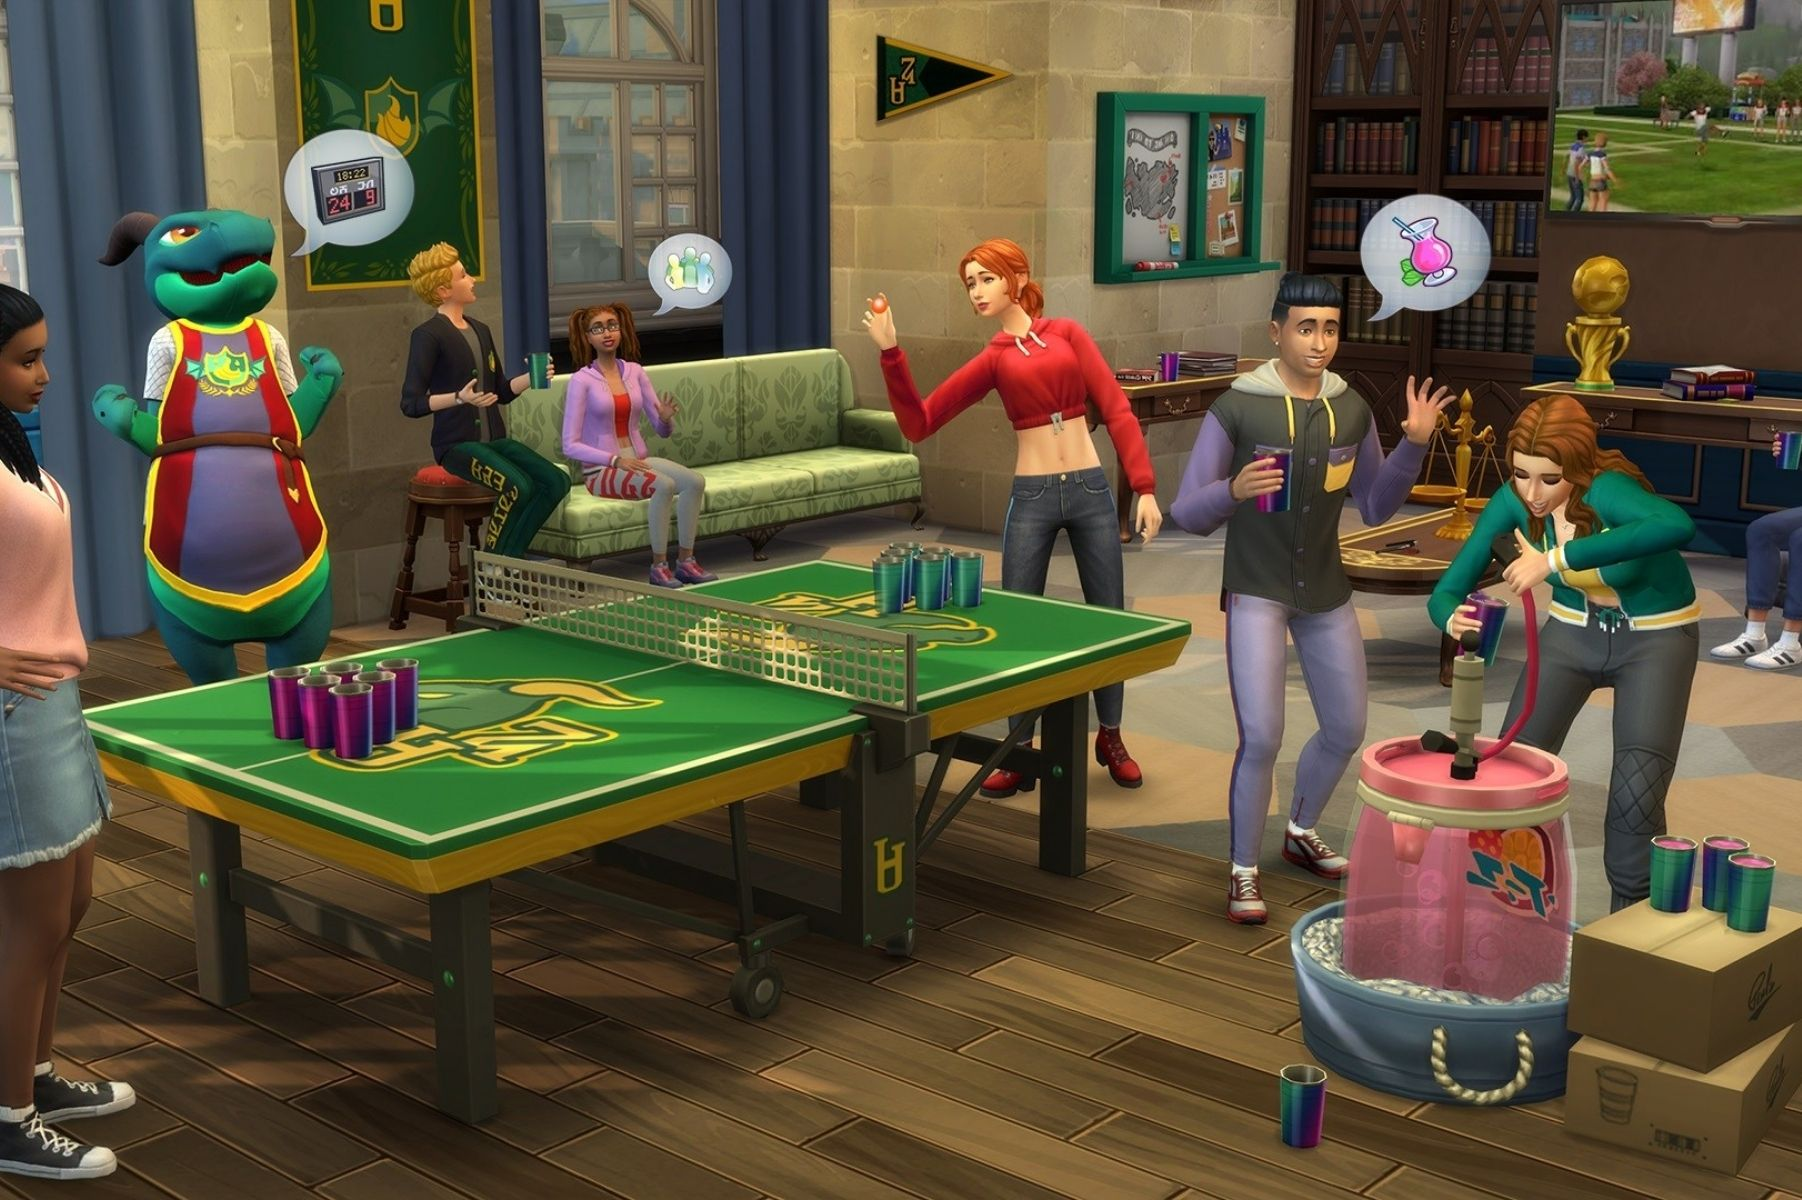 The sims 4 desafio big brother